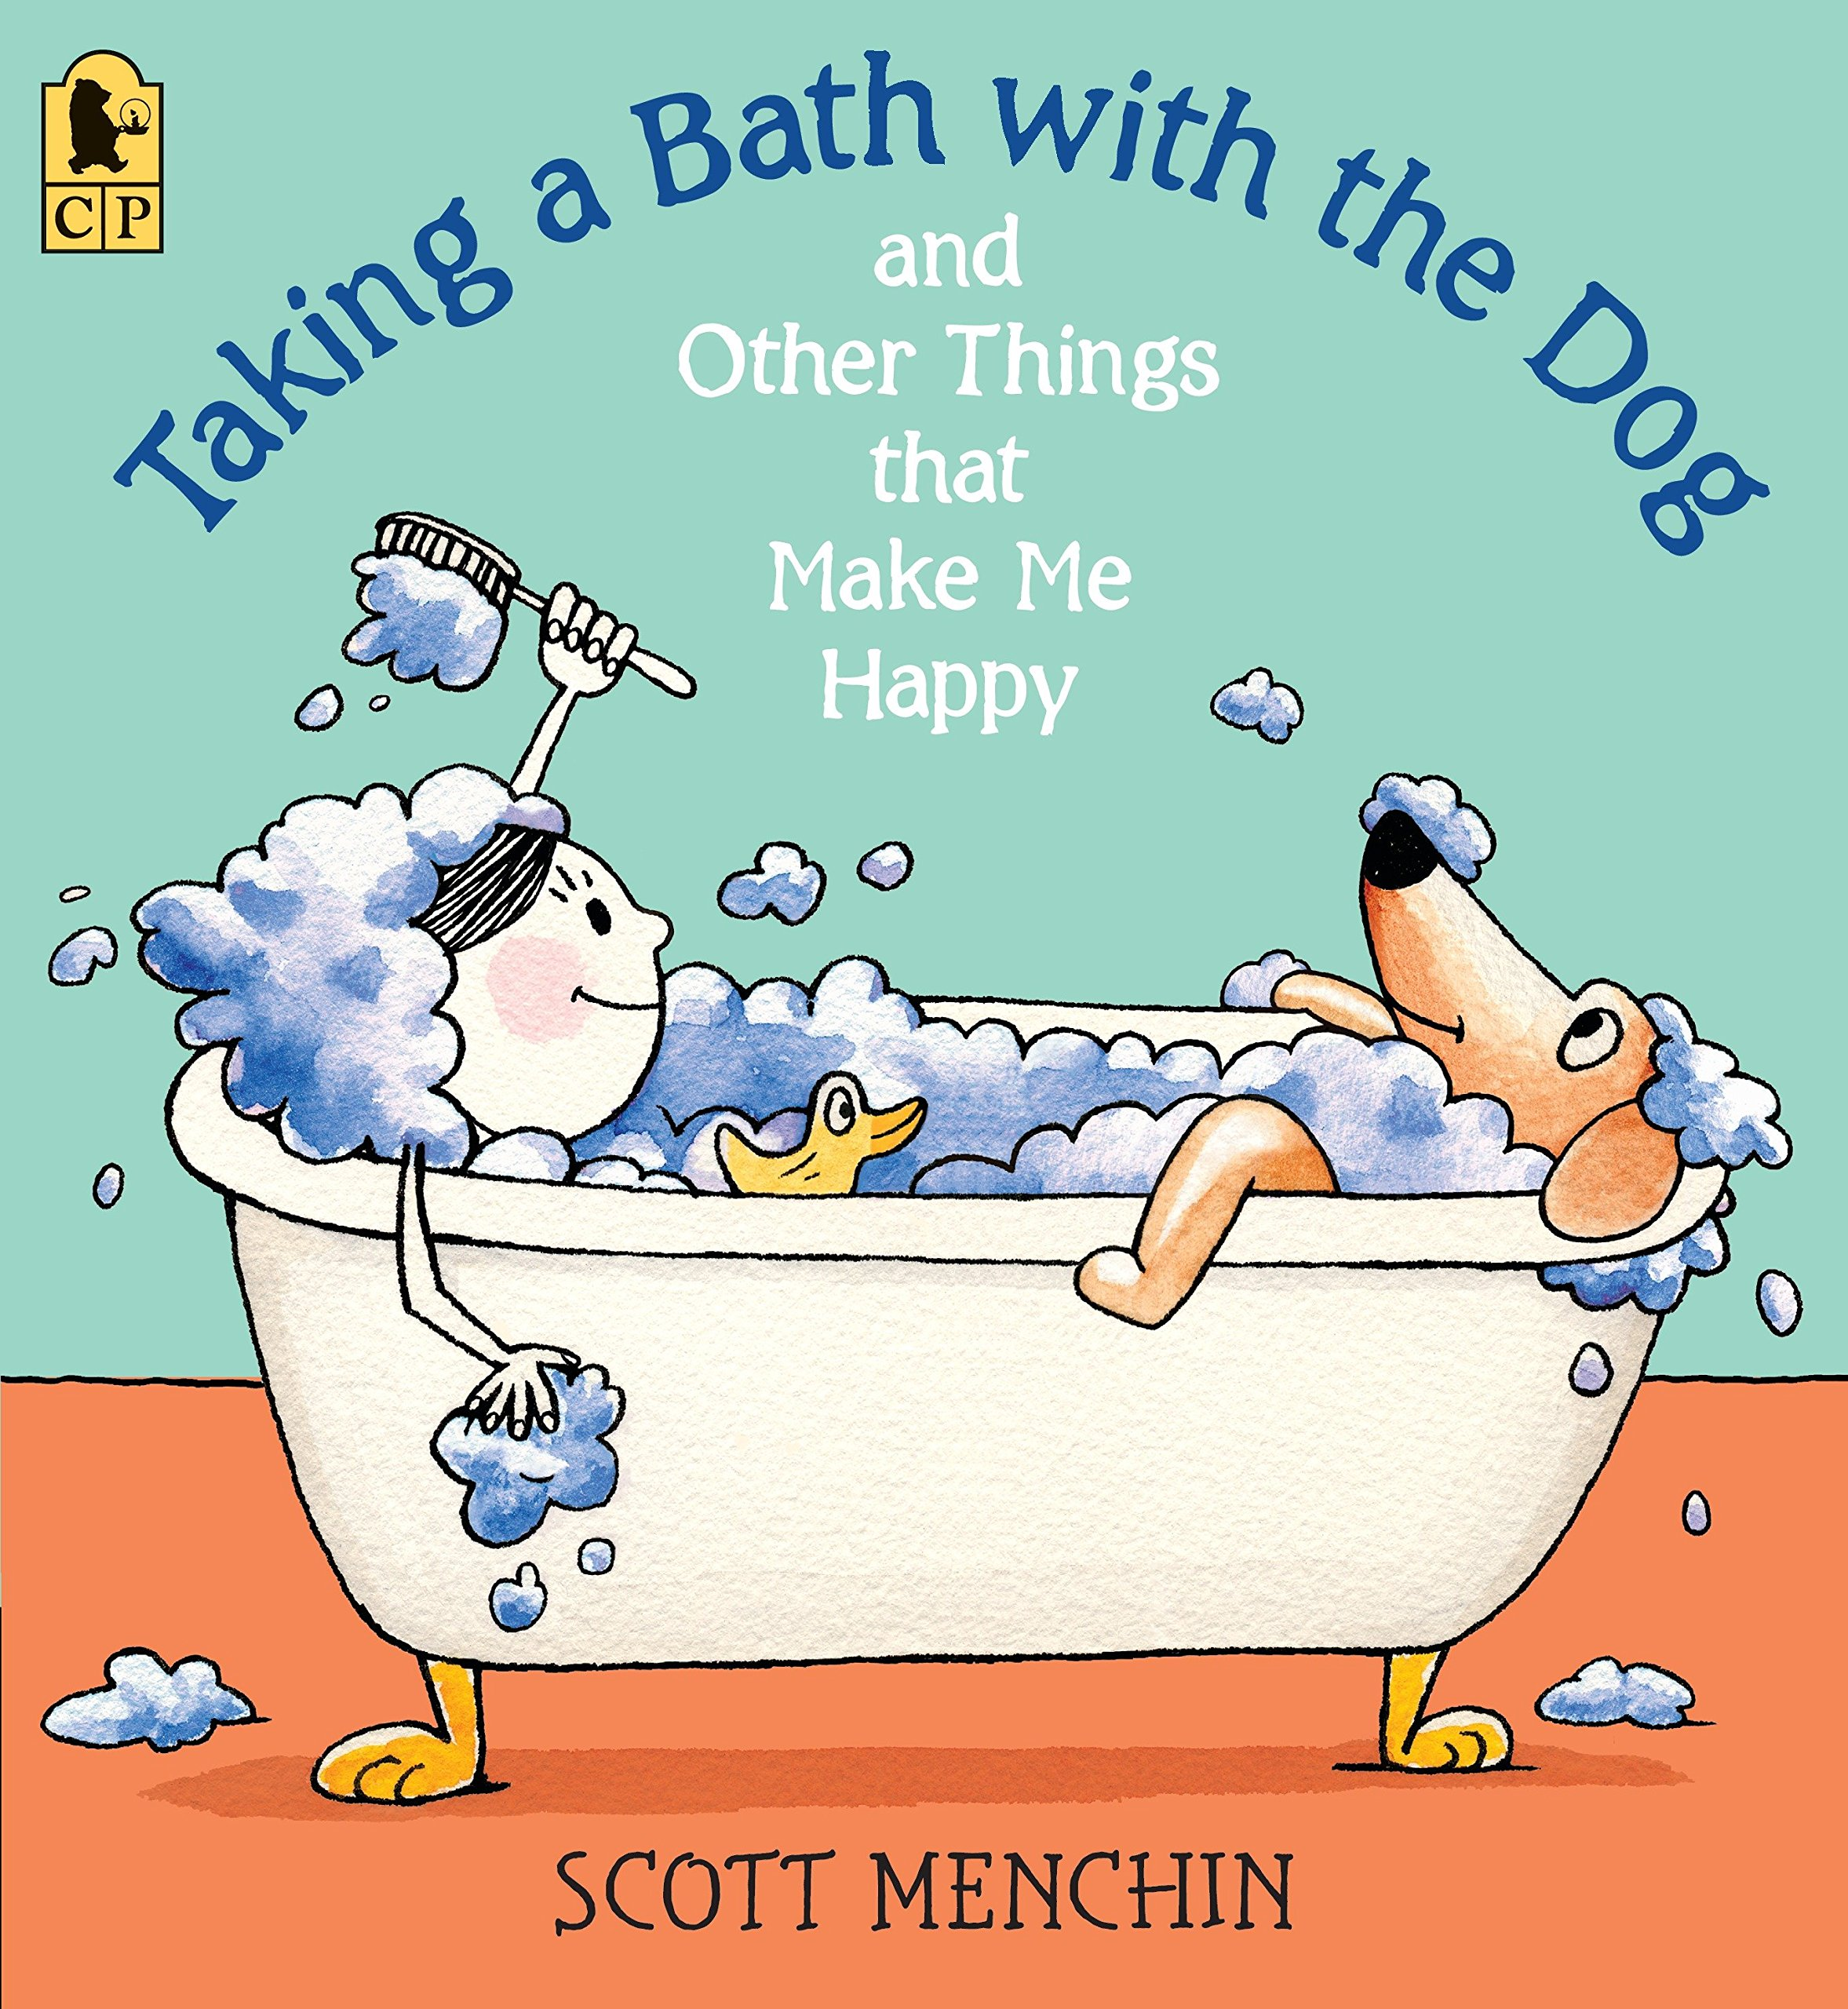 Taking a Bath with the Dog and Other Things that Make Me Happy ...